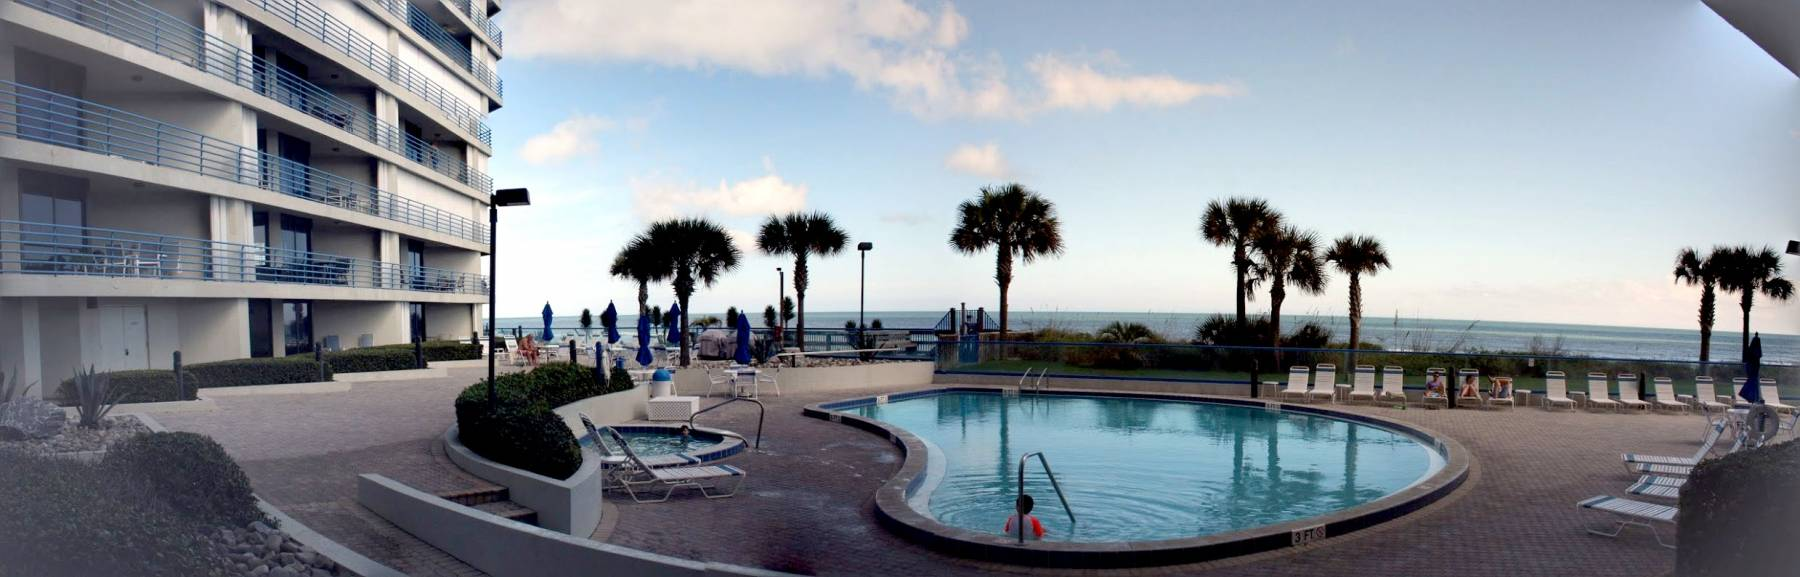 Ebbtide Condominium Luxury Vacation Condominiums In New Smyrna